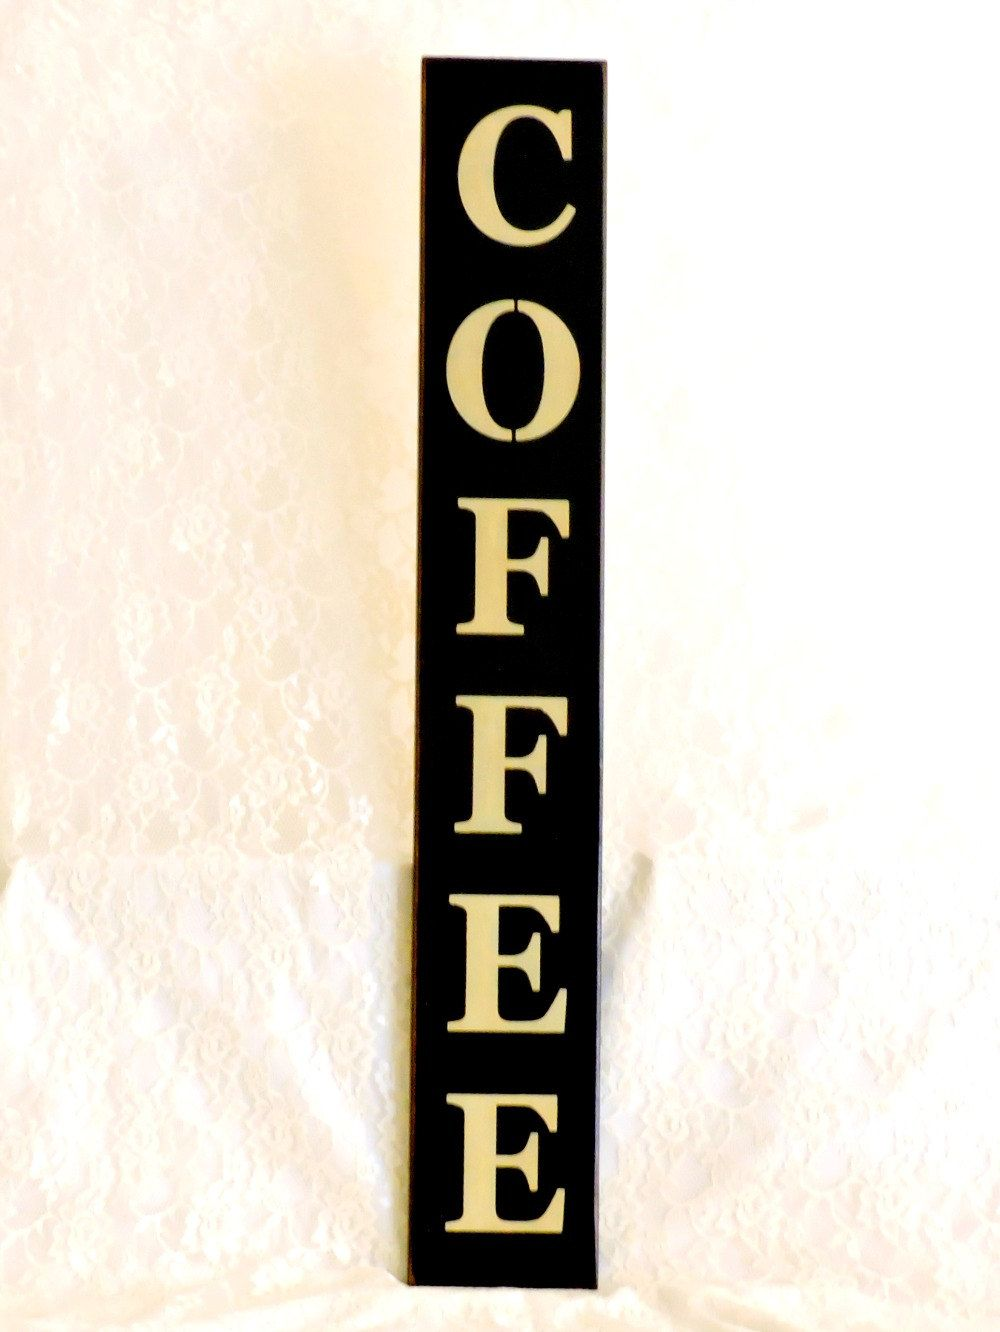 Wall Sign Decor Pleasing Coffee  Primitive Country Painted Wall Sign Vertical Sign Design Ideas